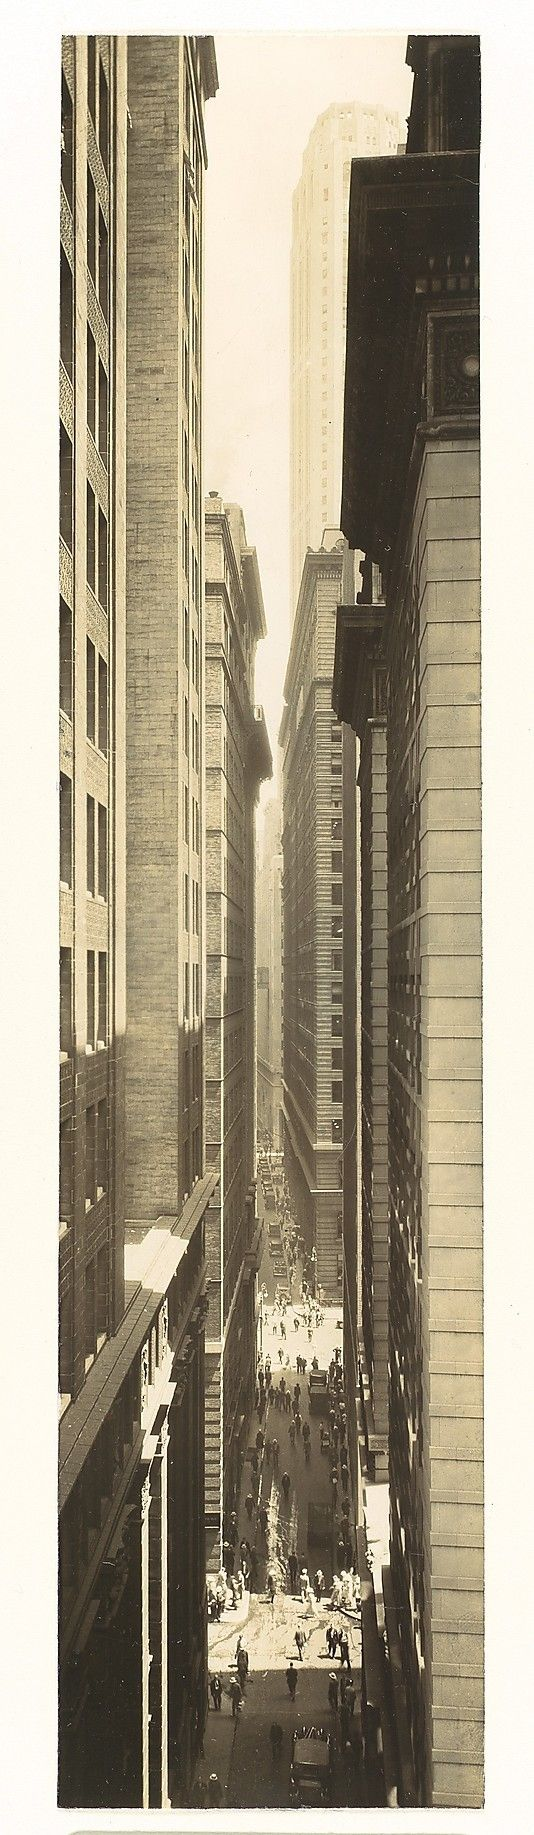 1933 : Exchange Place by Berenice Abbott